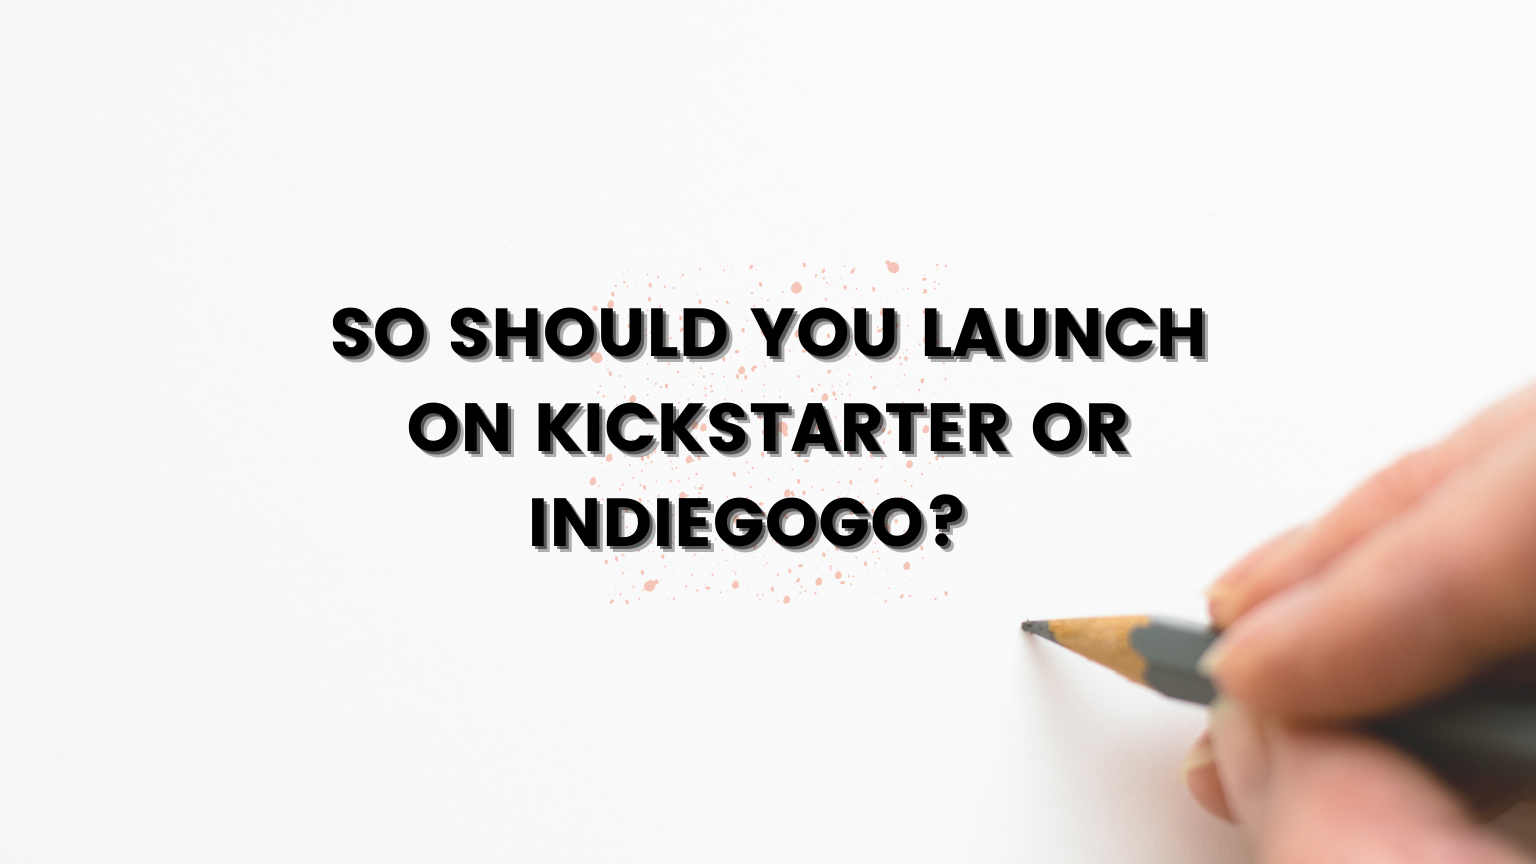 So Should You Launch on Kickstarter or Indiegogo